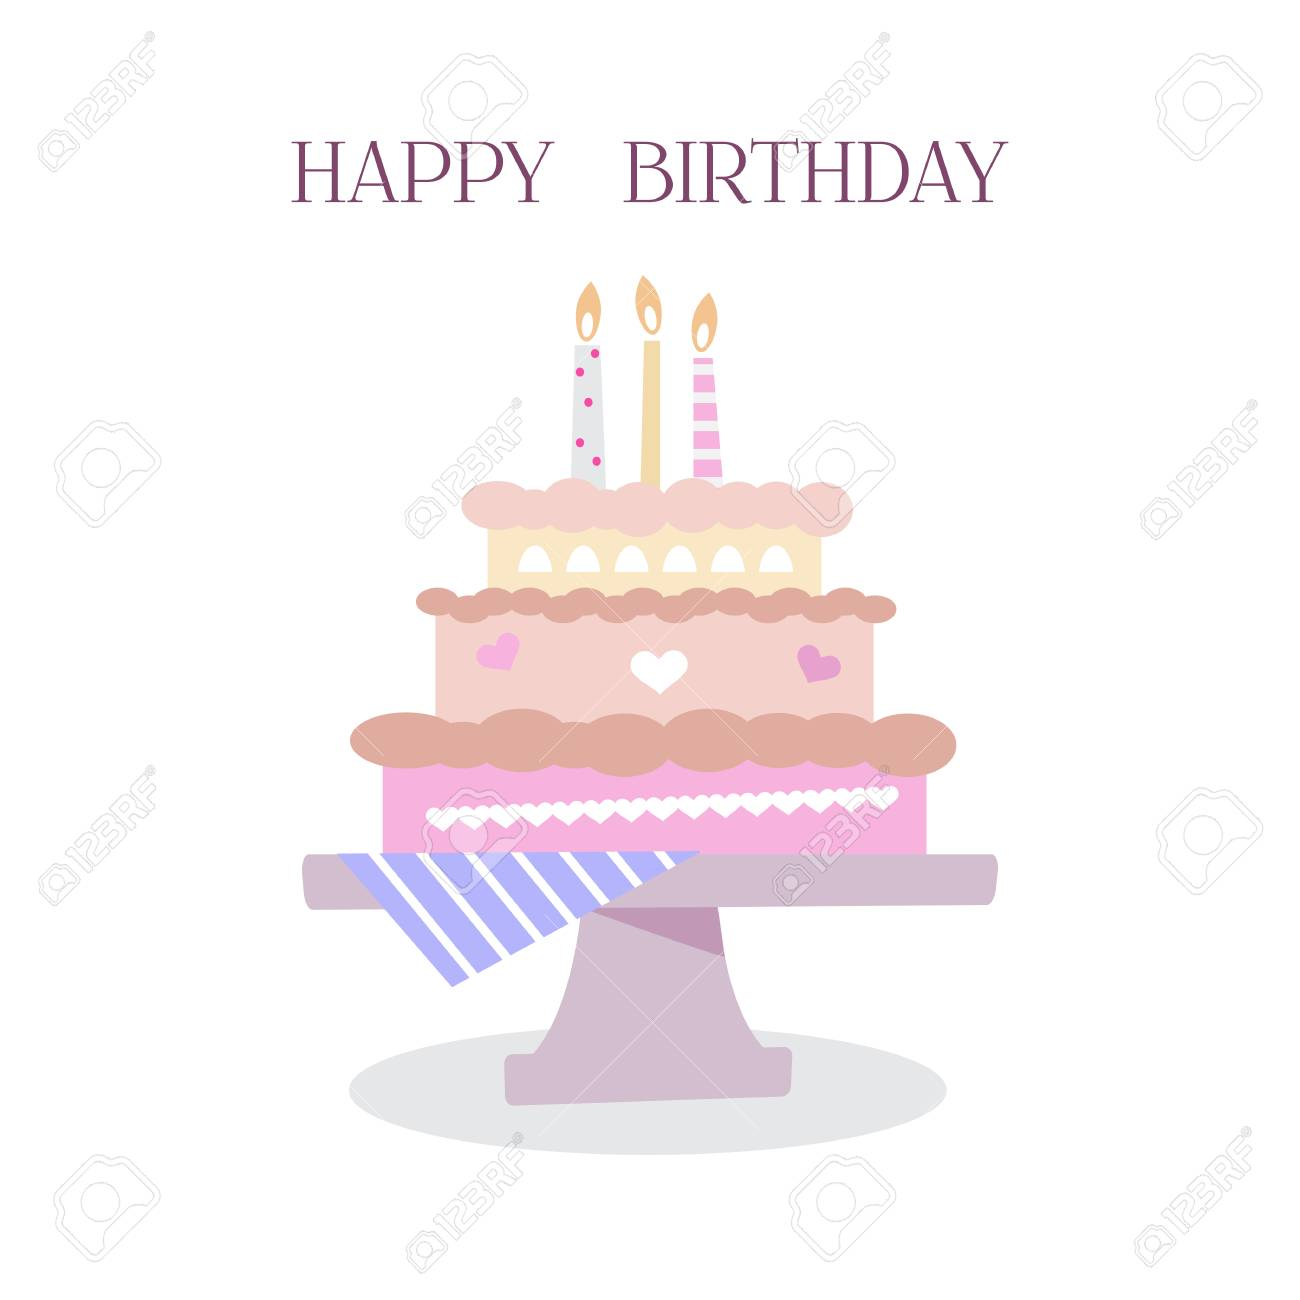 Happy Birthday To You Typographic Design For Greeting Cards Chocolate Cake In Three Layers With